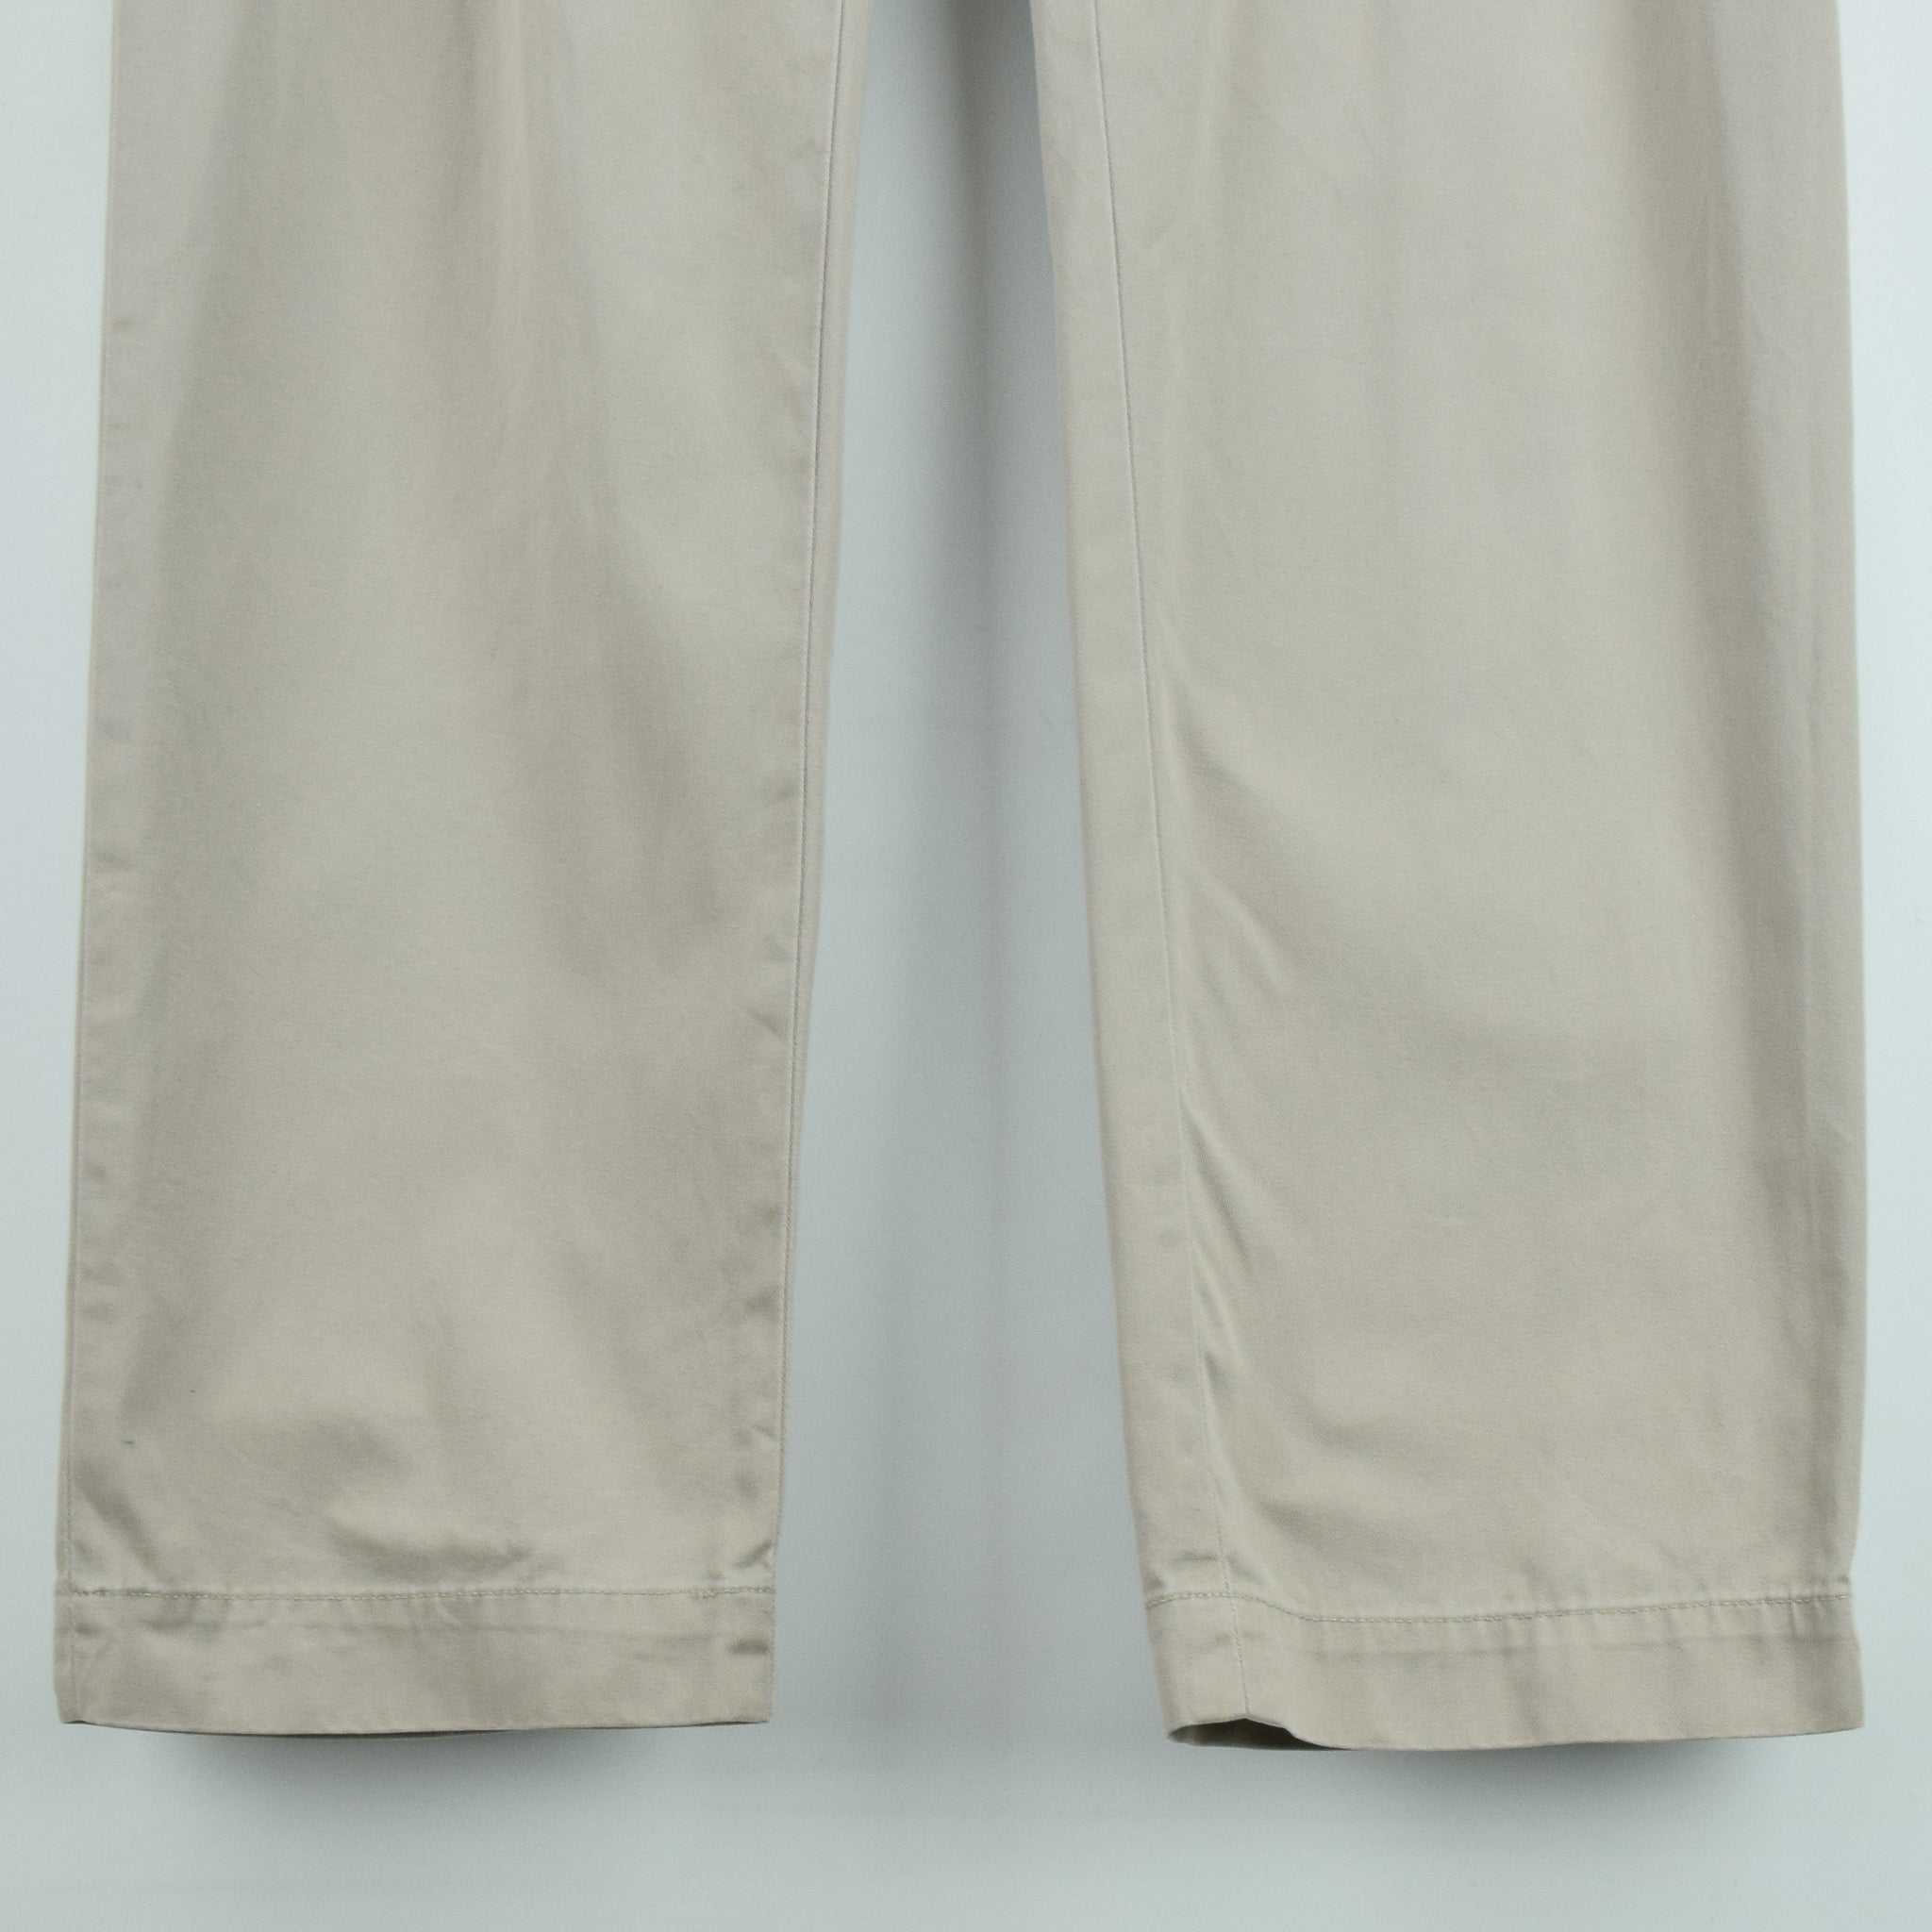 Ralph Lauren Polo Prospect Pant Chinos Stone Pleated Front Trousers 36 W 34 L front hem